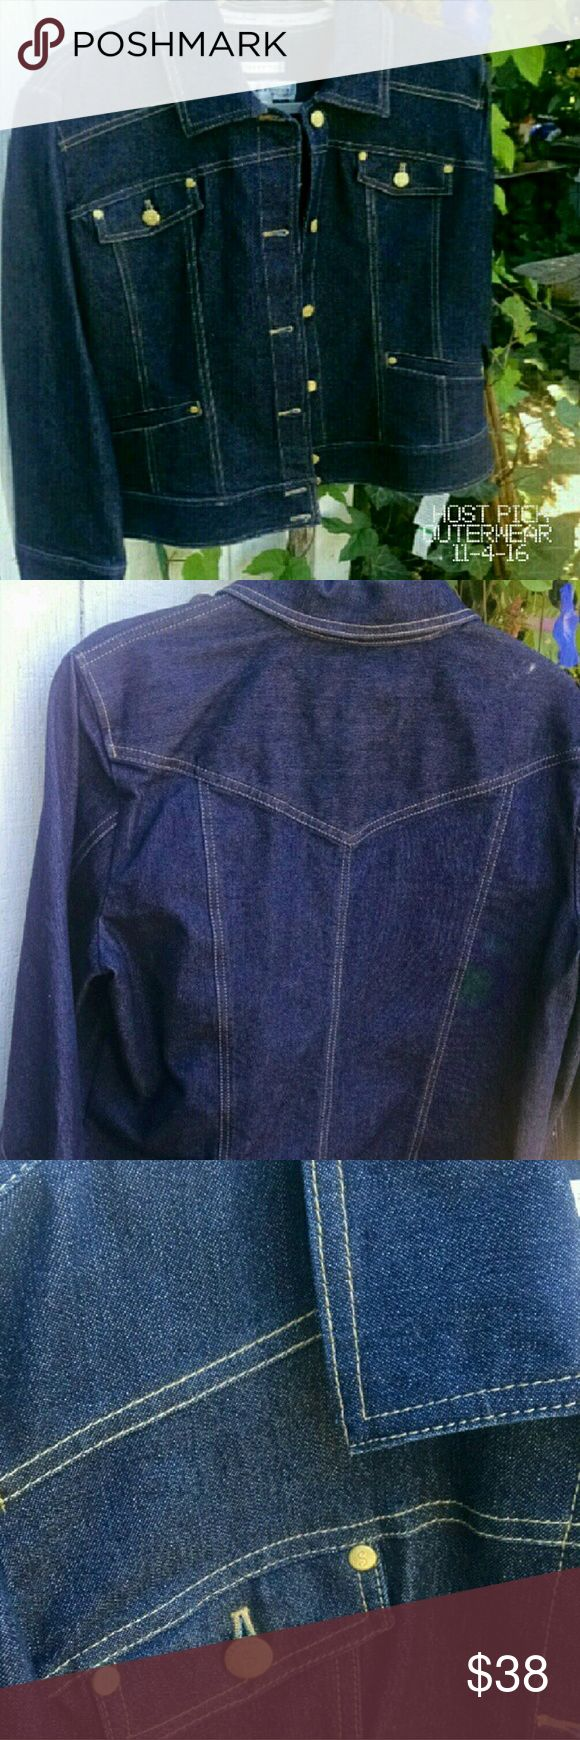 """Final Price Jones Wear Studio Denim Jacket NWT A very nicely tailored denim long sleeve jacket. All seams are finished with binding. No raw seams. Beautiful signature gold buttons ... great with dresses, skirts and jeans.  NWT.  PRICE FIRM EXCEPT IF BUNDLED  Pit to pit 22"""" Sleeve length 24.5"""" Back length not including collar 23""""  75% Cotton 23% polyester  2%  spandex  Machine wash & line dry  Smoke free/ pet friendly home Jones Wear Studio Jackets & Coats Jean Jackets"""